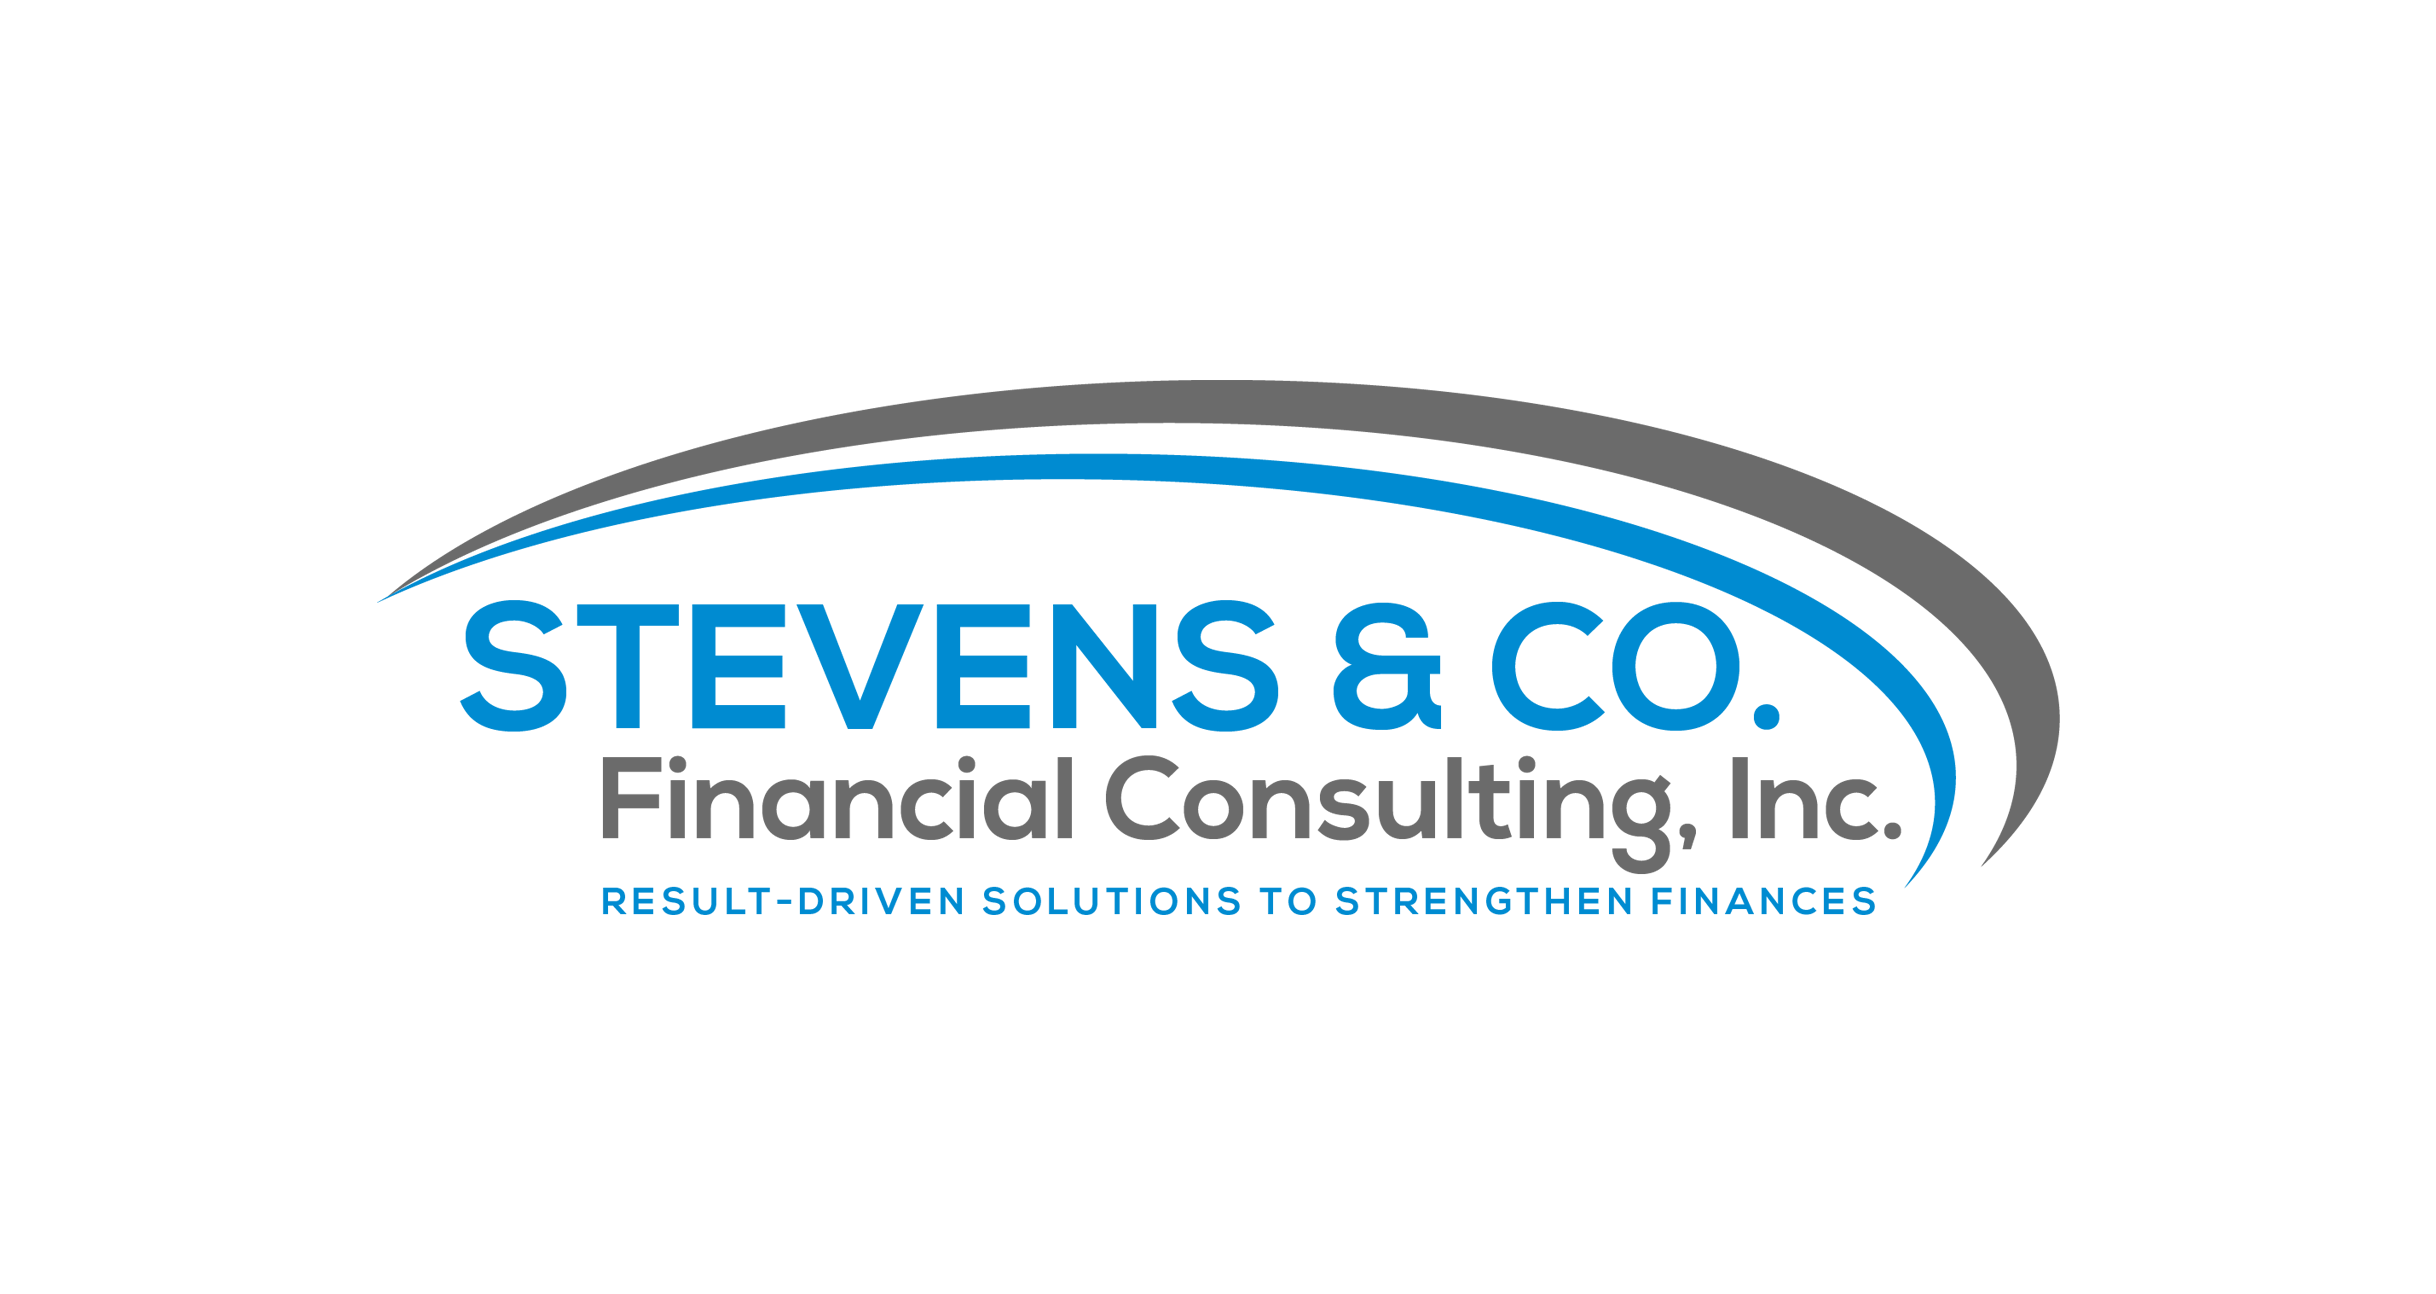 Stevens & Co. Financial Consulting Inc.